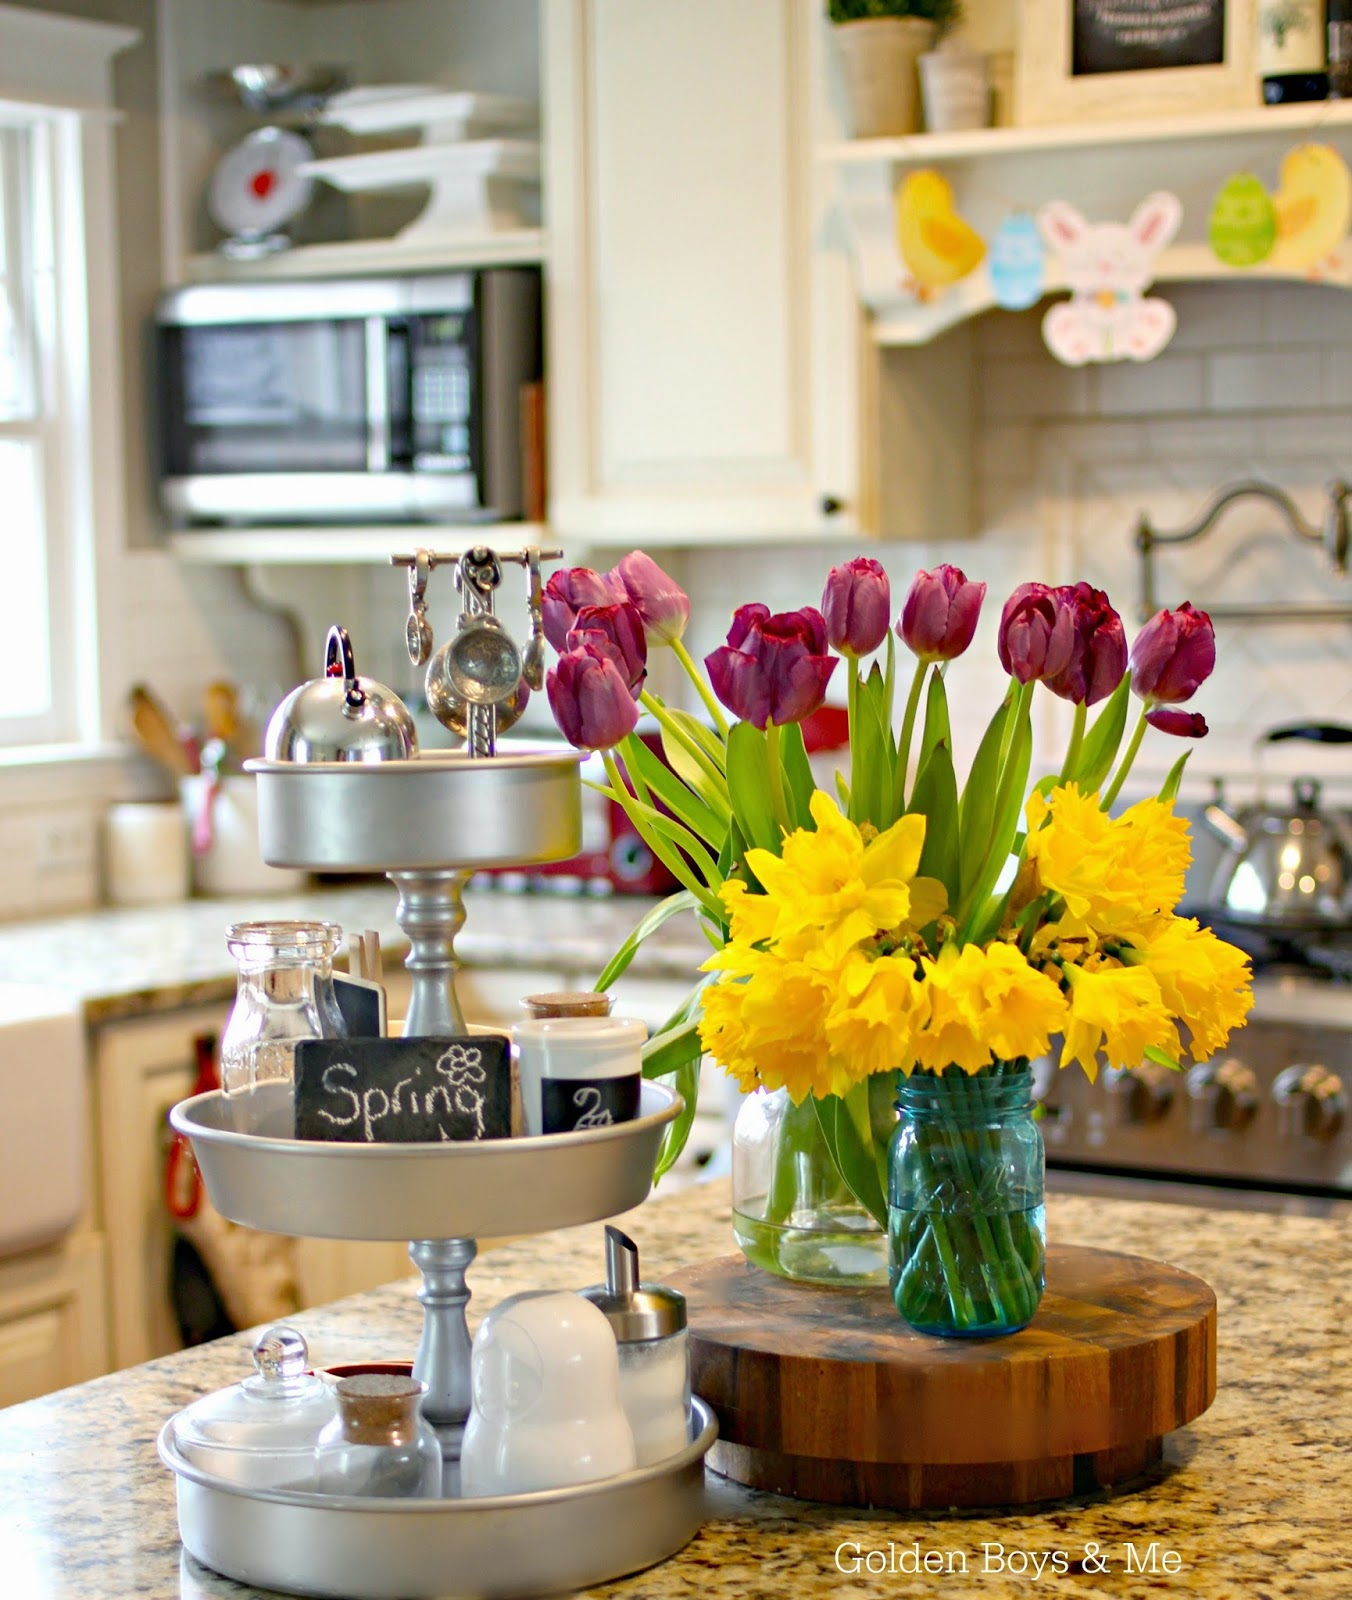 Tulips and Daffodils in kitchen with DIY 3 tiered kitchen stand - www.goldenboysandme.com